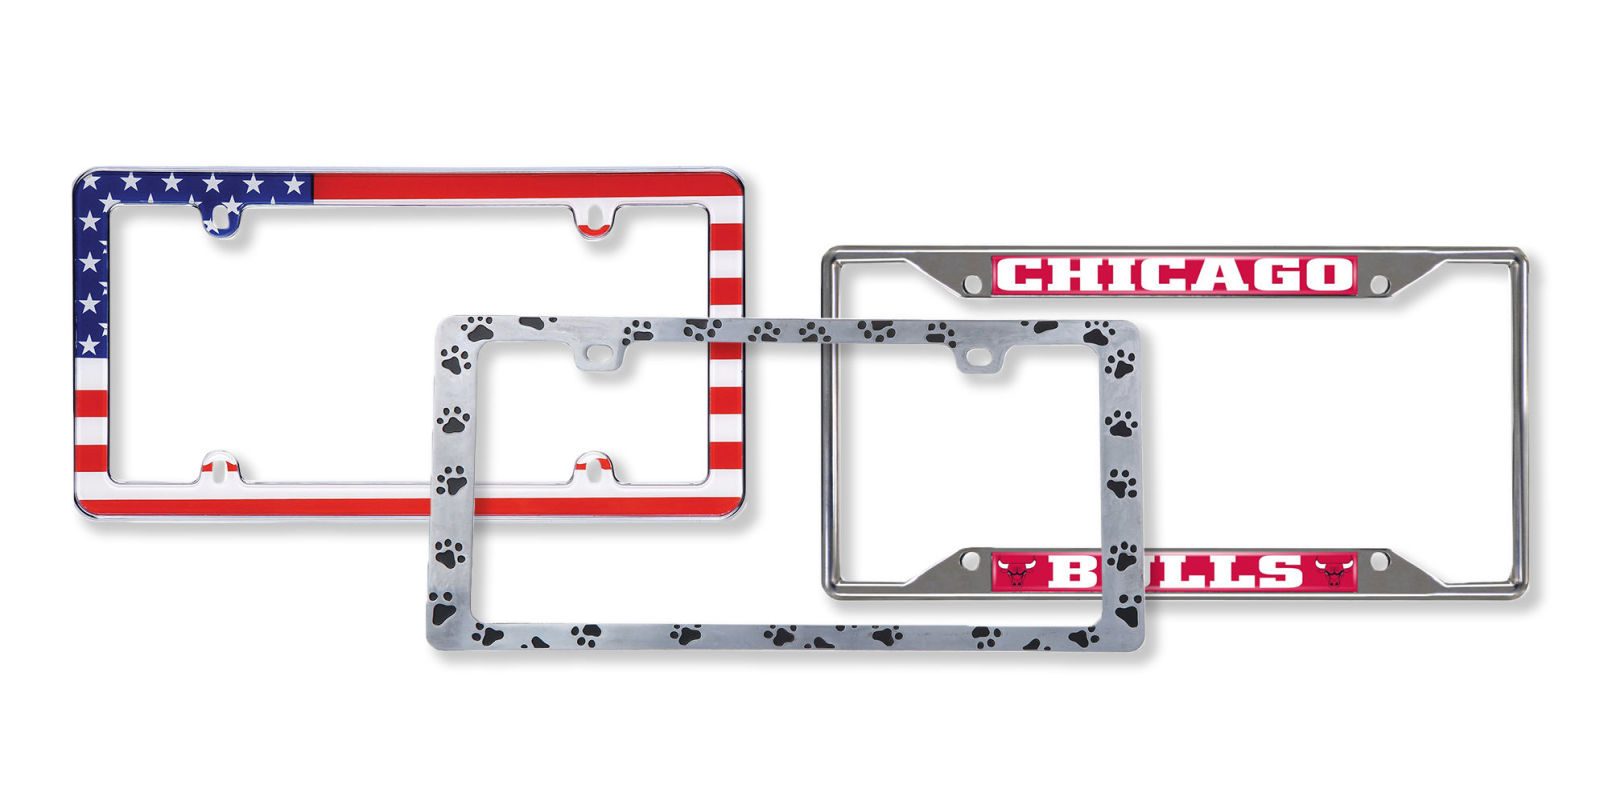 License Plate Covers amp Frames Automotive  amazoncom